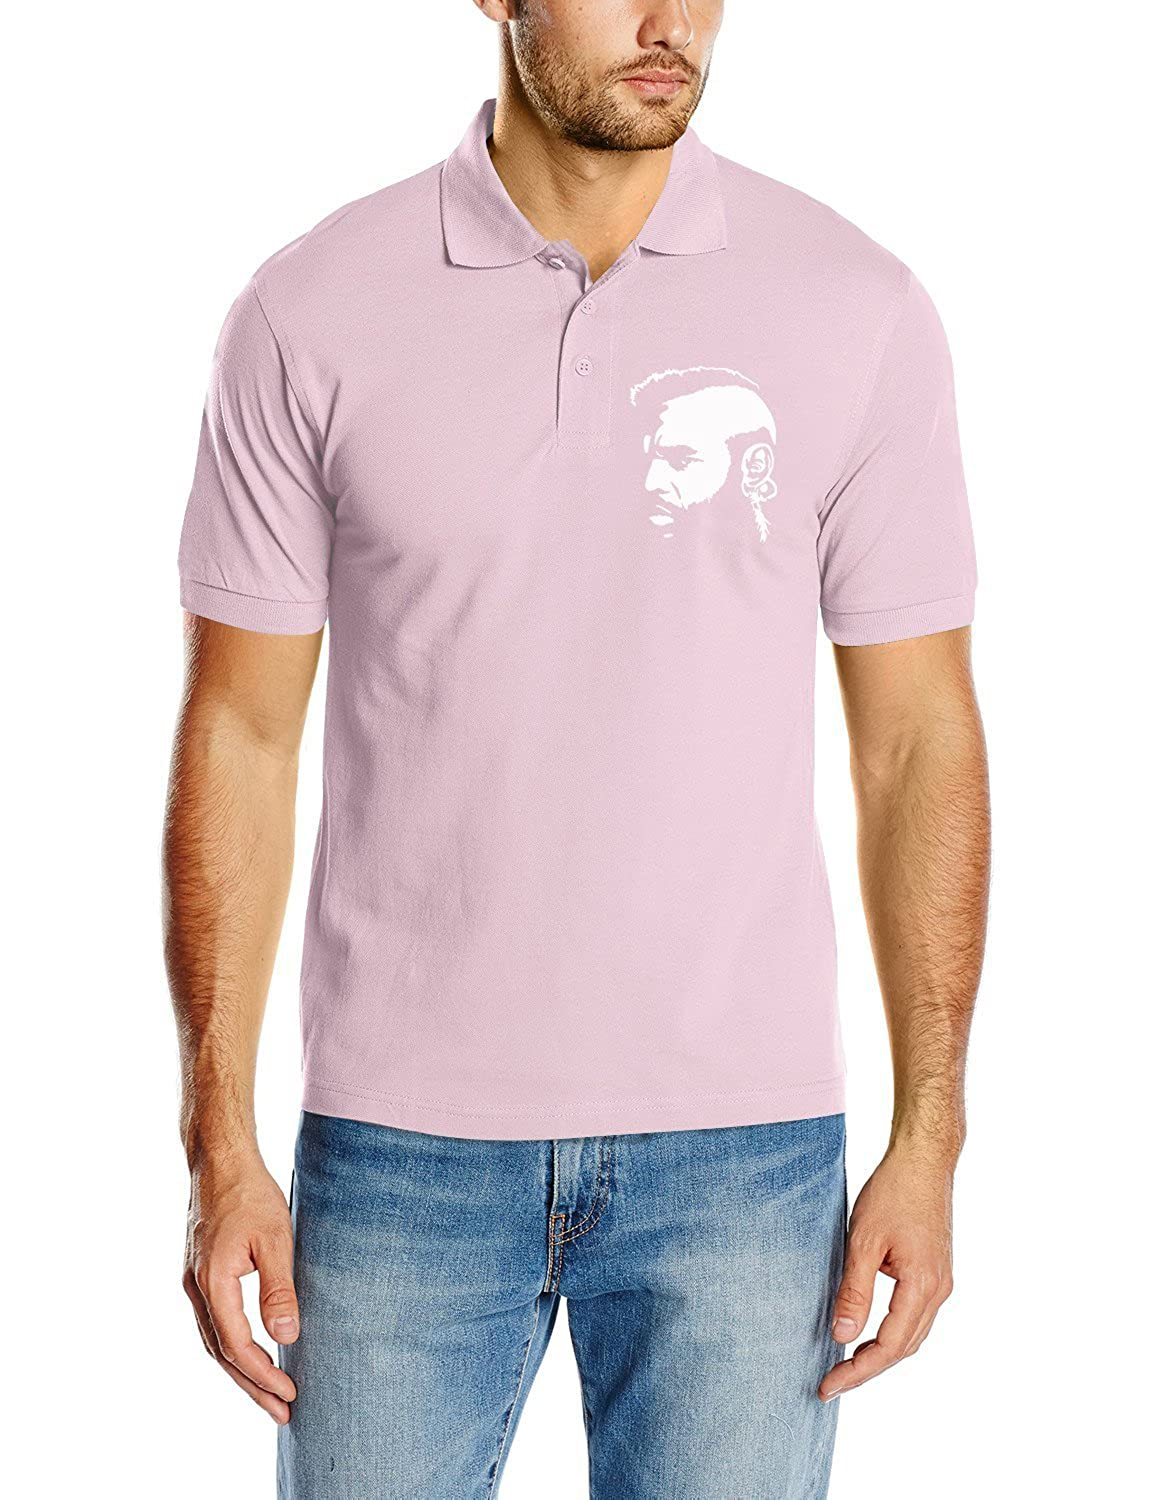 Touchlines Herren Fashion Poloshirt Clubber - Mr. T vom A-Team, D2019 pink S